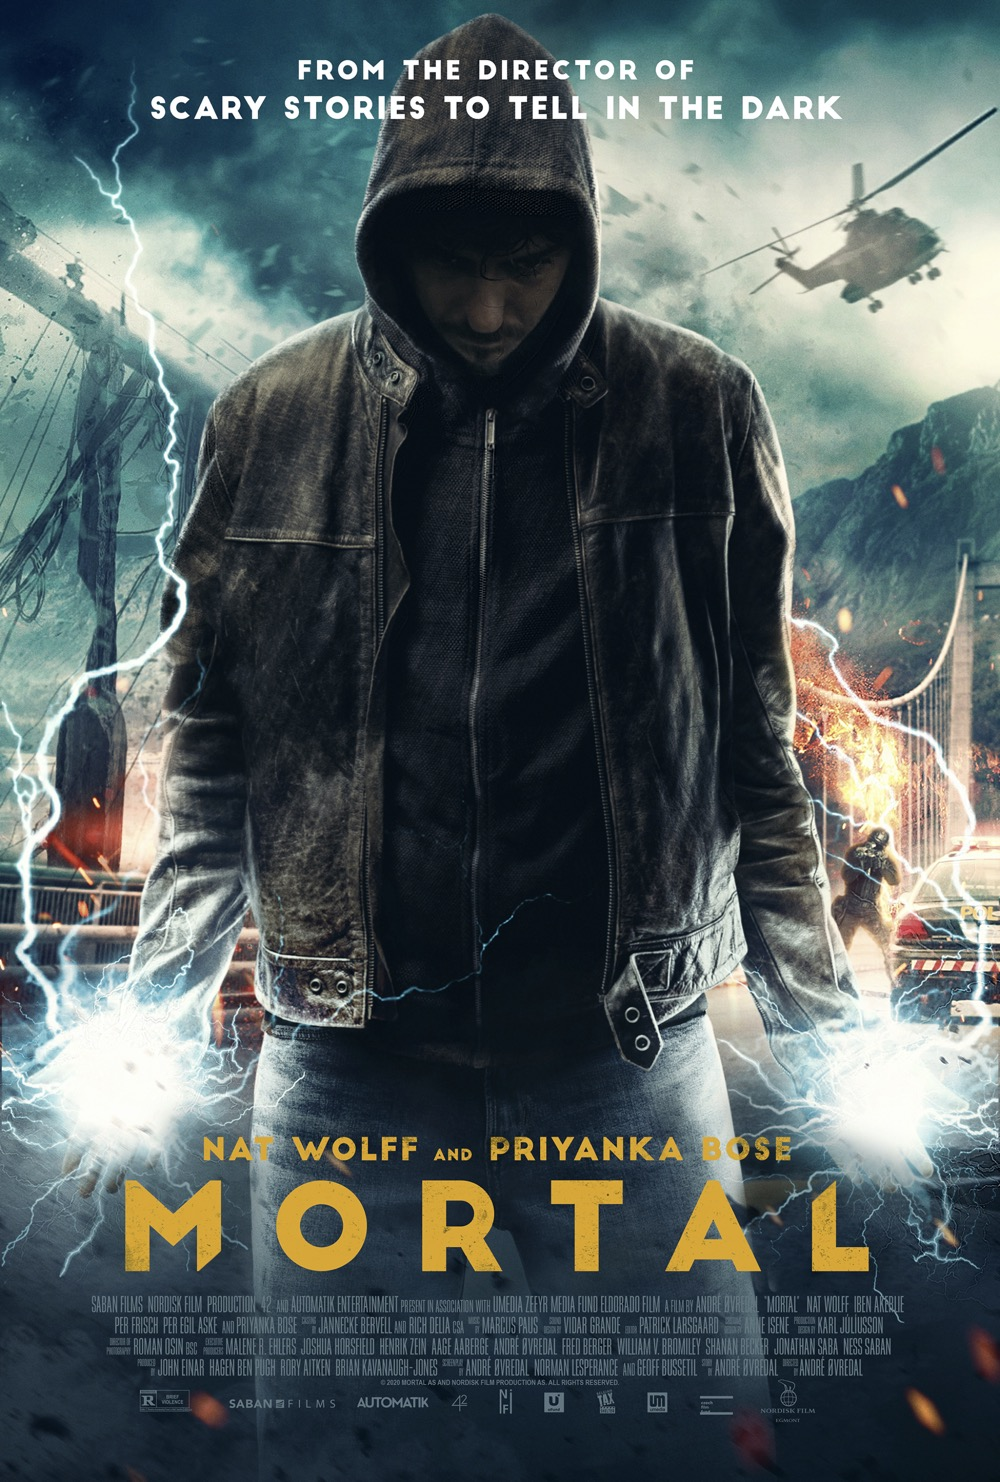 MORTAL Movie Poster